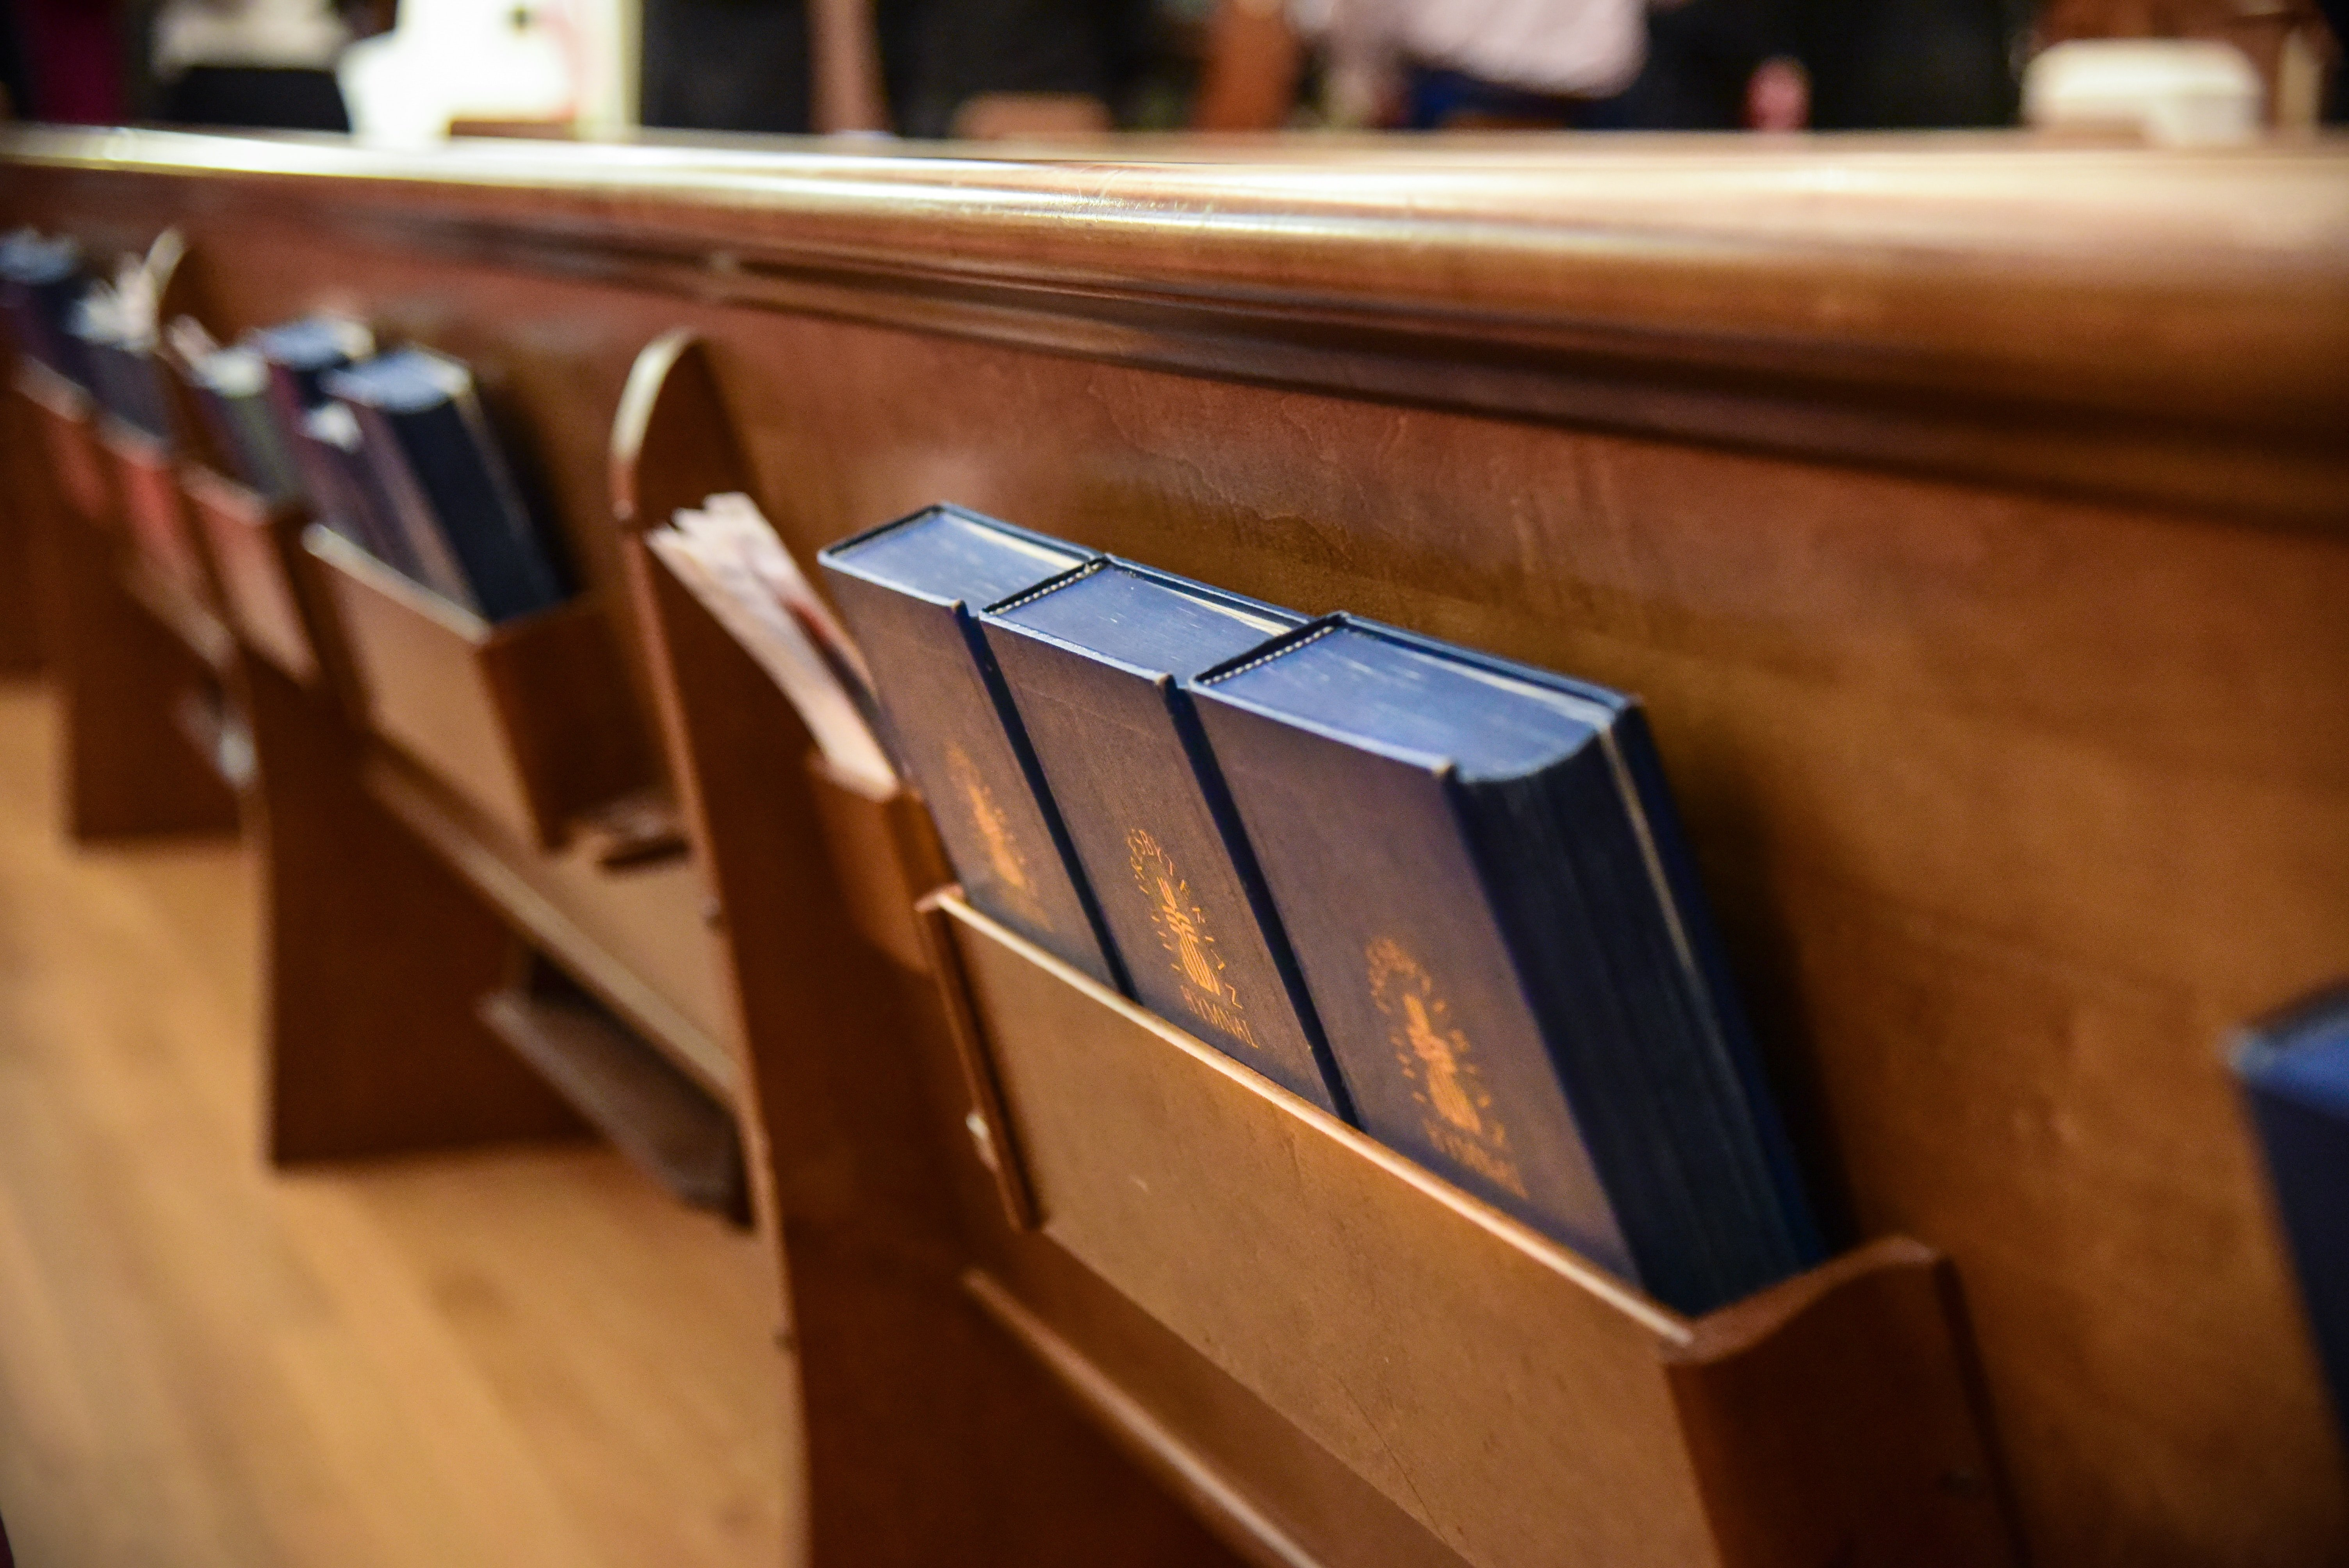 The Top Ten List of Easy Hymns for Beginning Hymn Players